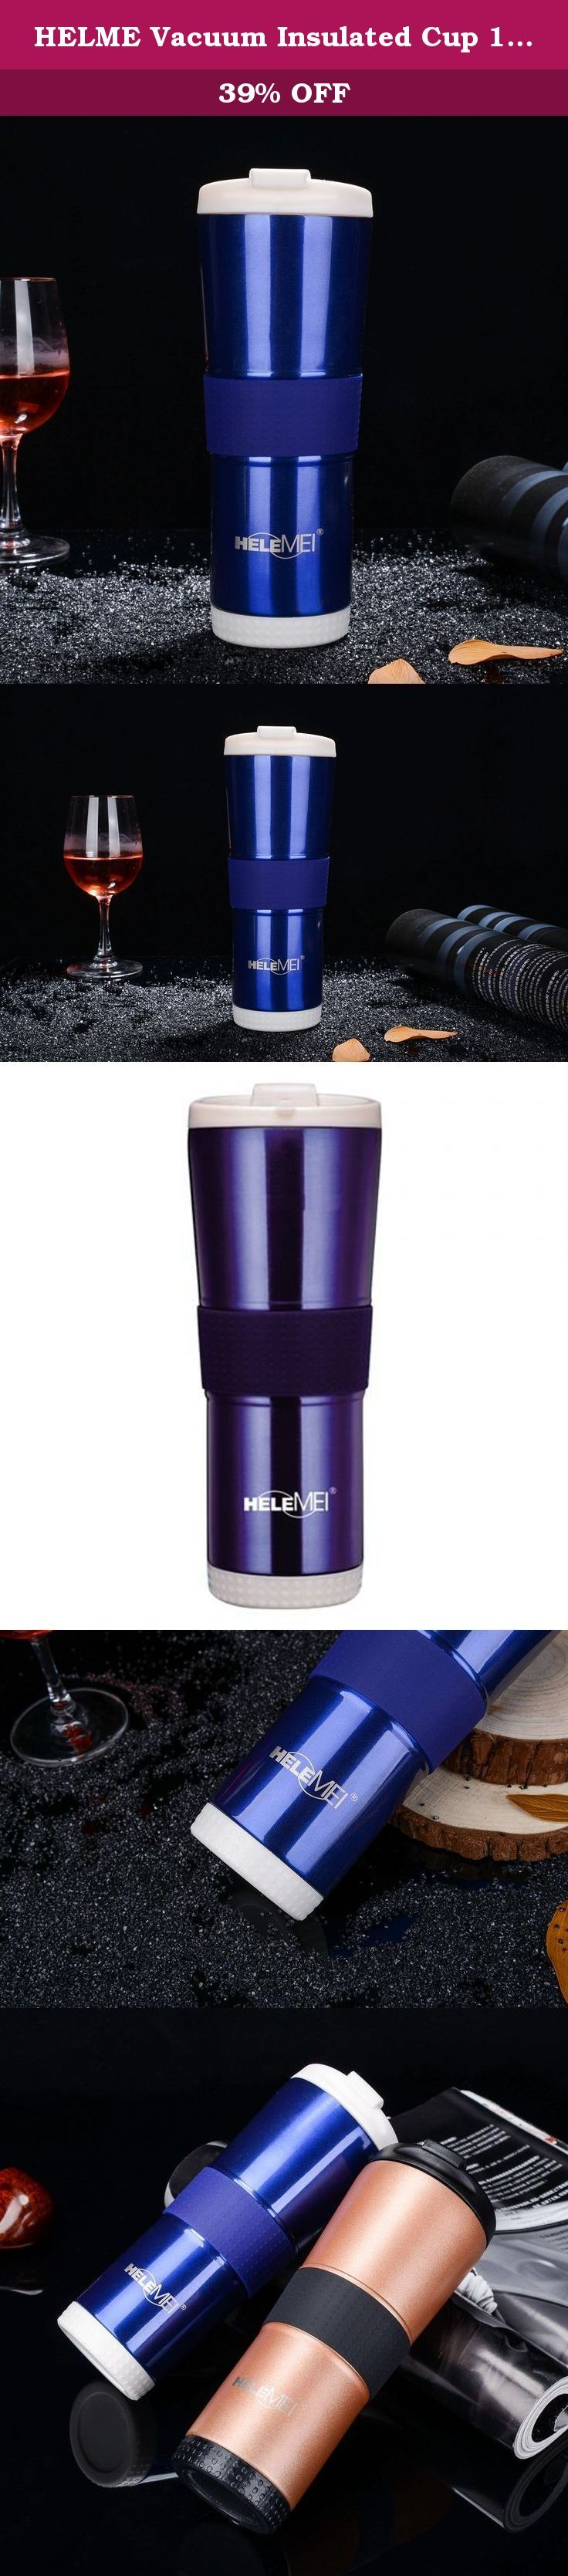 HELME Vacuum Insulated Cup 17oz - Wide Mouth Thermos Travel Mug Double Wall Coffee Mug (blue). One-piece Leak-proof Lid The HELME Coffee Mug has a one-piece leak-proof lid that allows for quick and easy cleaning while preventing leaks. The Coffee Mug lid easily snaps up for drinking and snaps closed to seal once you've finished.. Convenient for One-handed Drinking This Coffee Mug has a comfortable grip that provides convenient one-handed drinking for both left- and right-handed users. The...